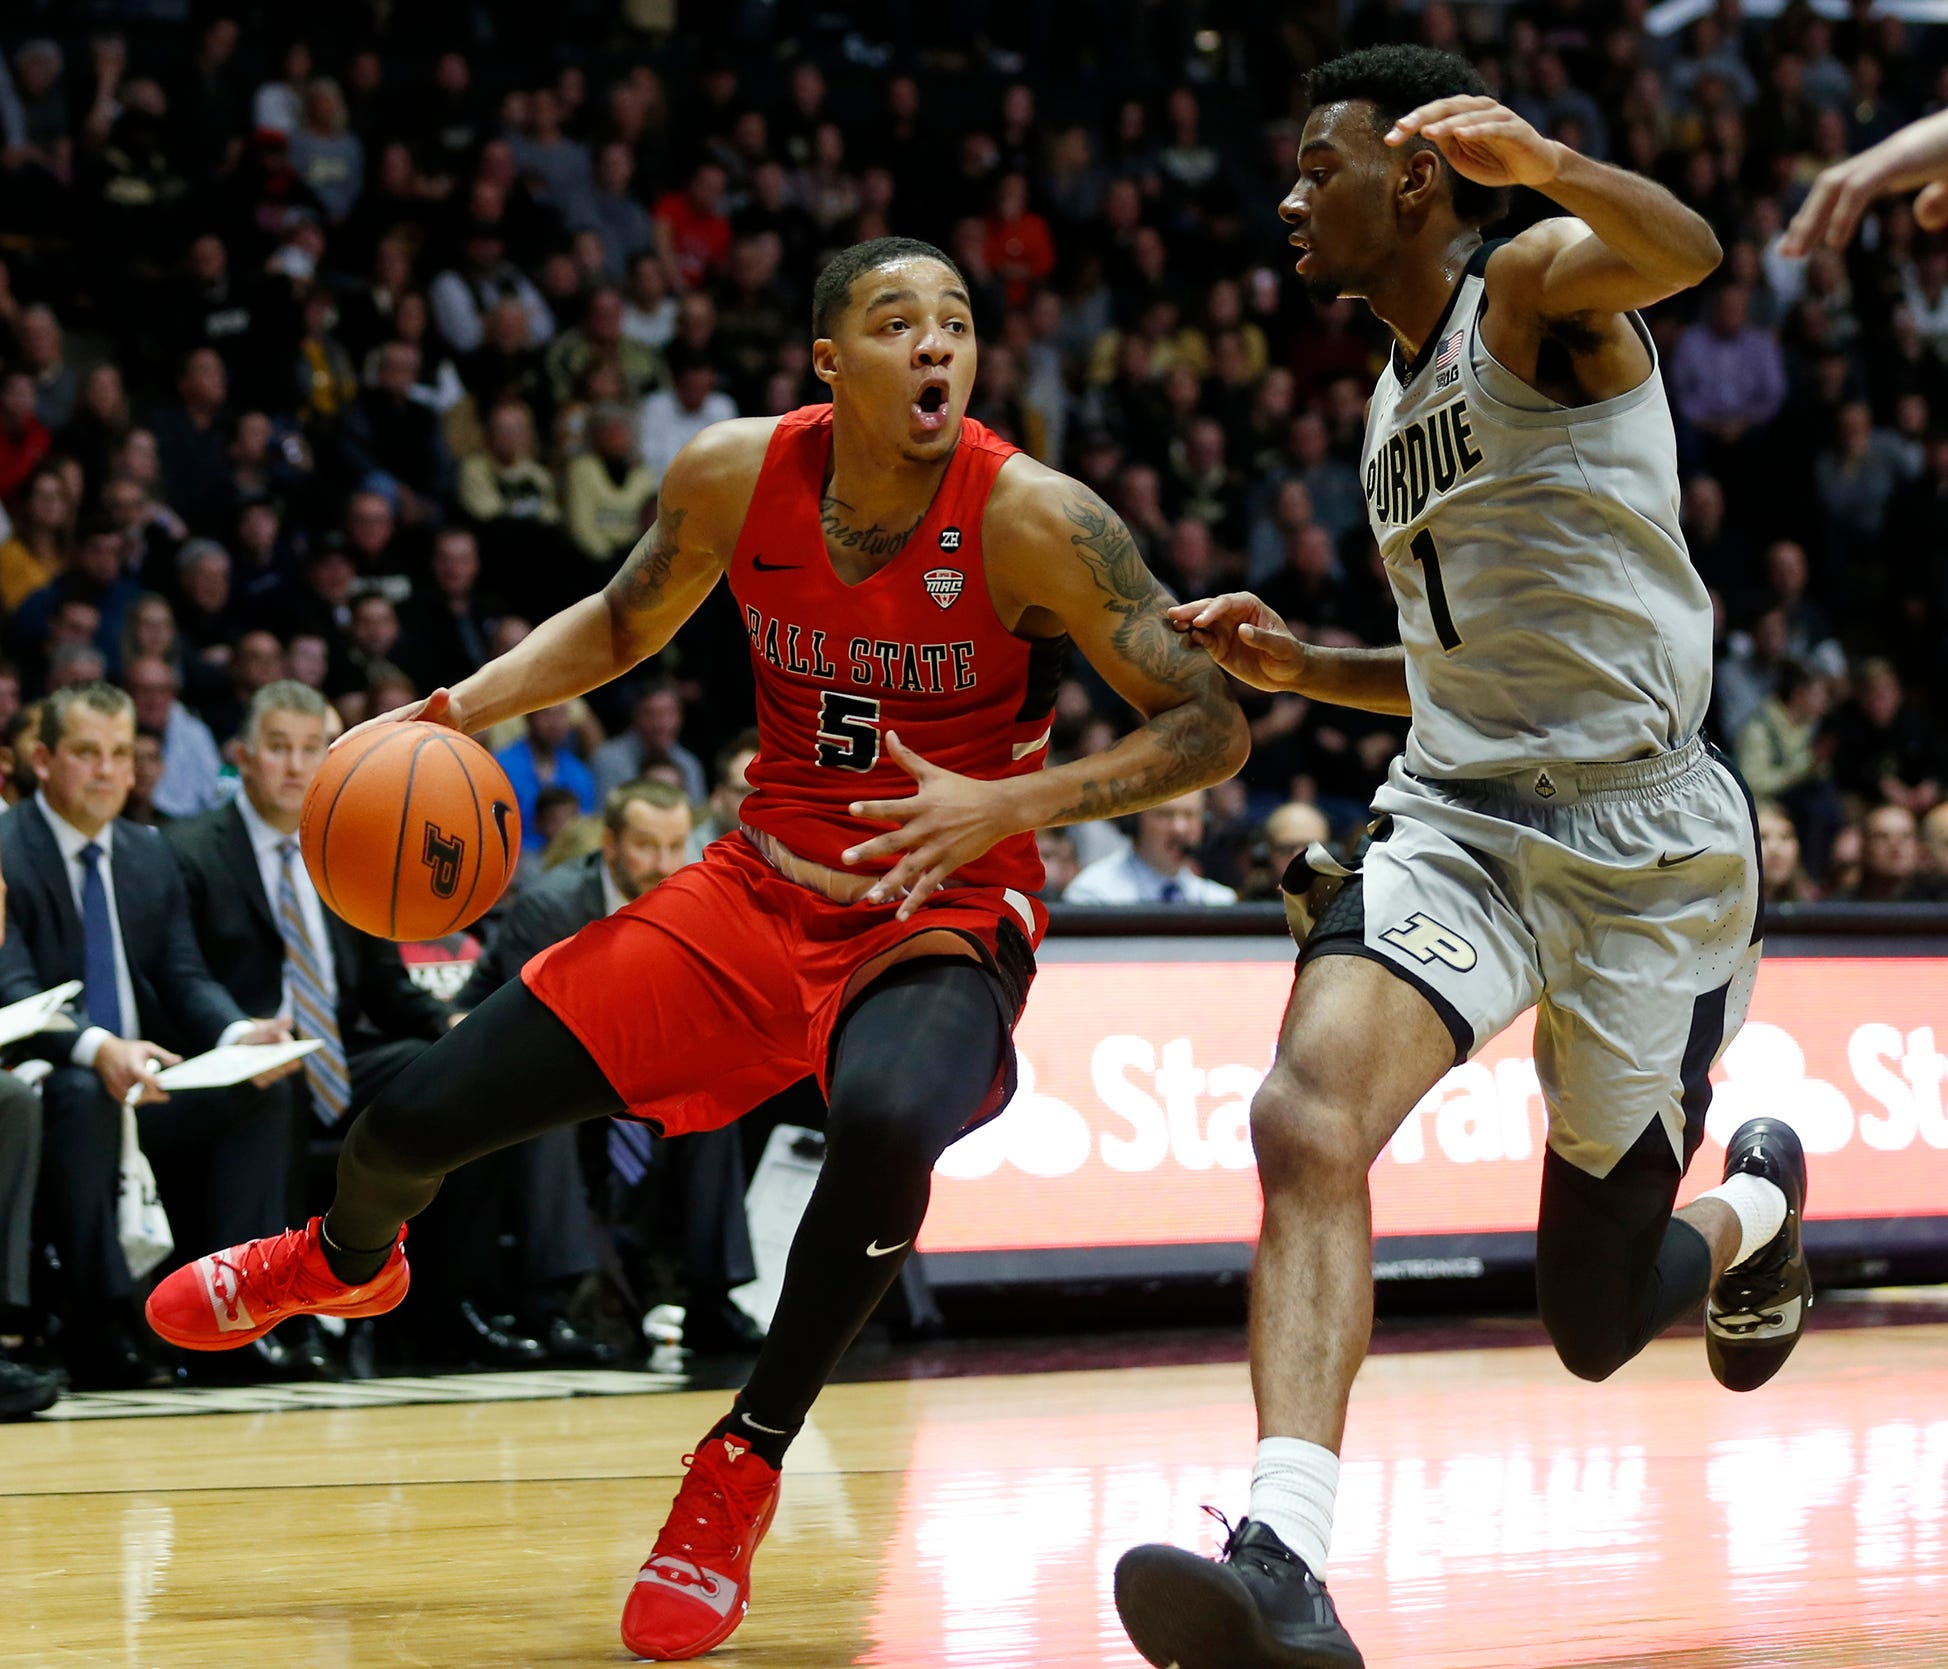 Ishmael el-Amin of Ball State with a drive to the basket against Aaron Wheeler of Purdue Saturday, November 10, 2018, at Mackey Arena. Purdue defeated Ball State 84-75.